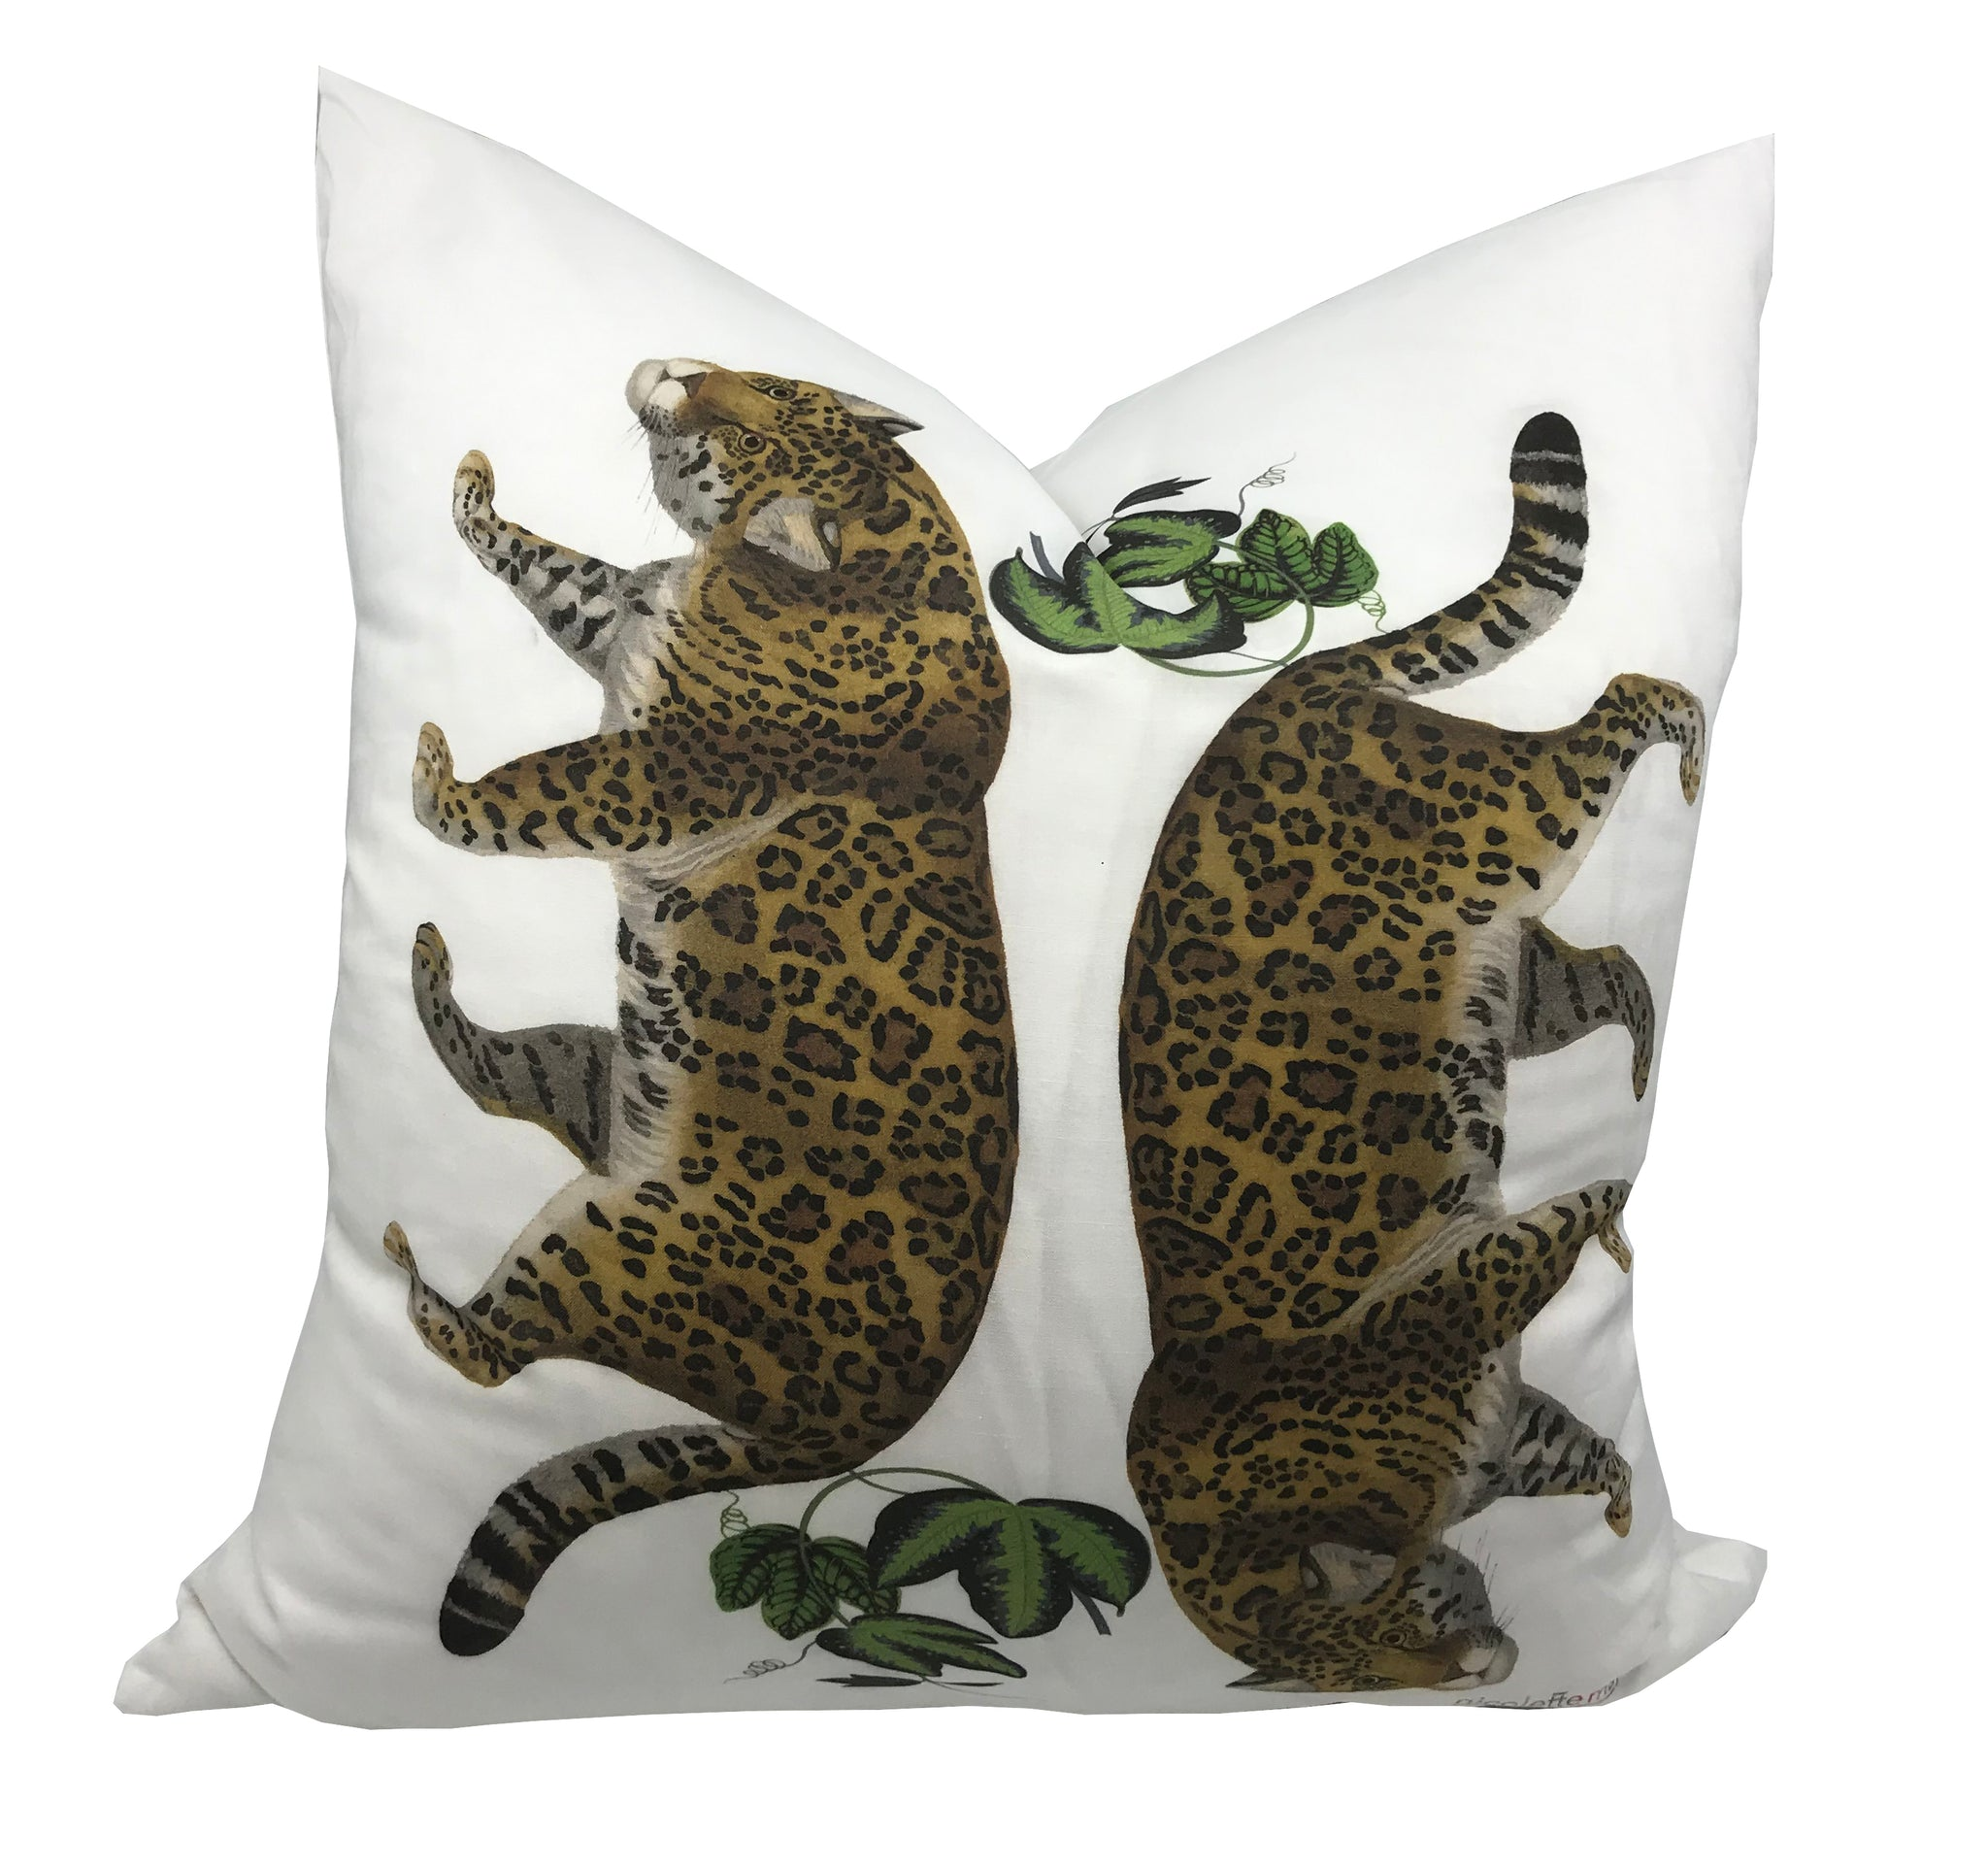 "LEOPARD MODERN ACCENT THROW PILLOW 22""x22"" - nicolettemayer.shop"